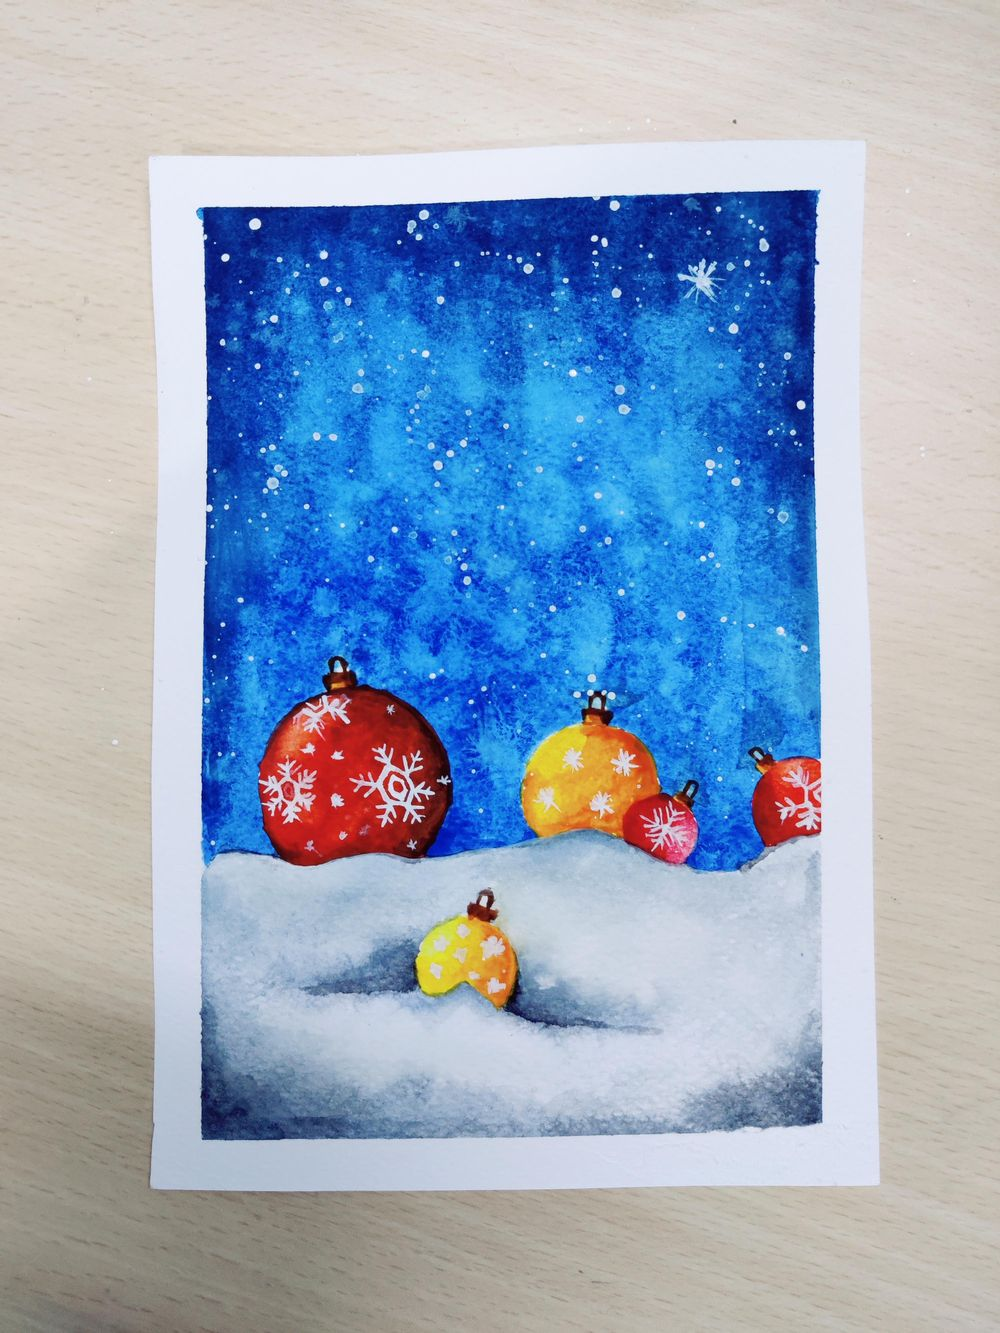 24 days to Christmas - image 1 - student project